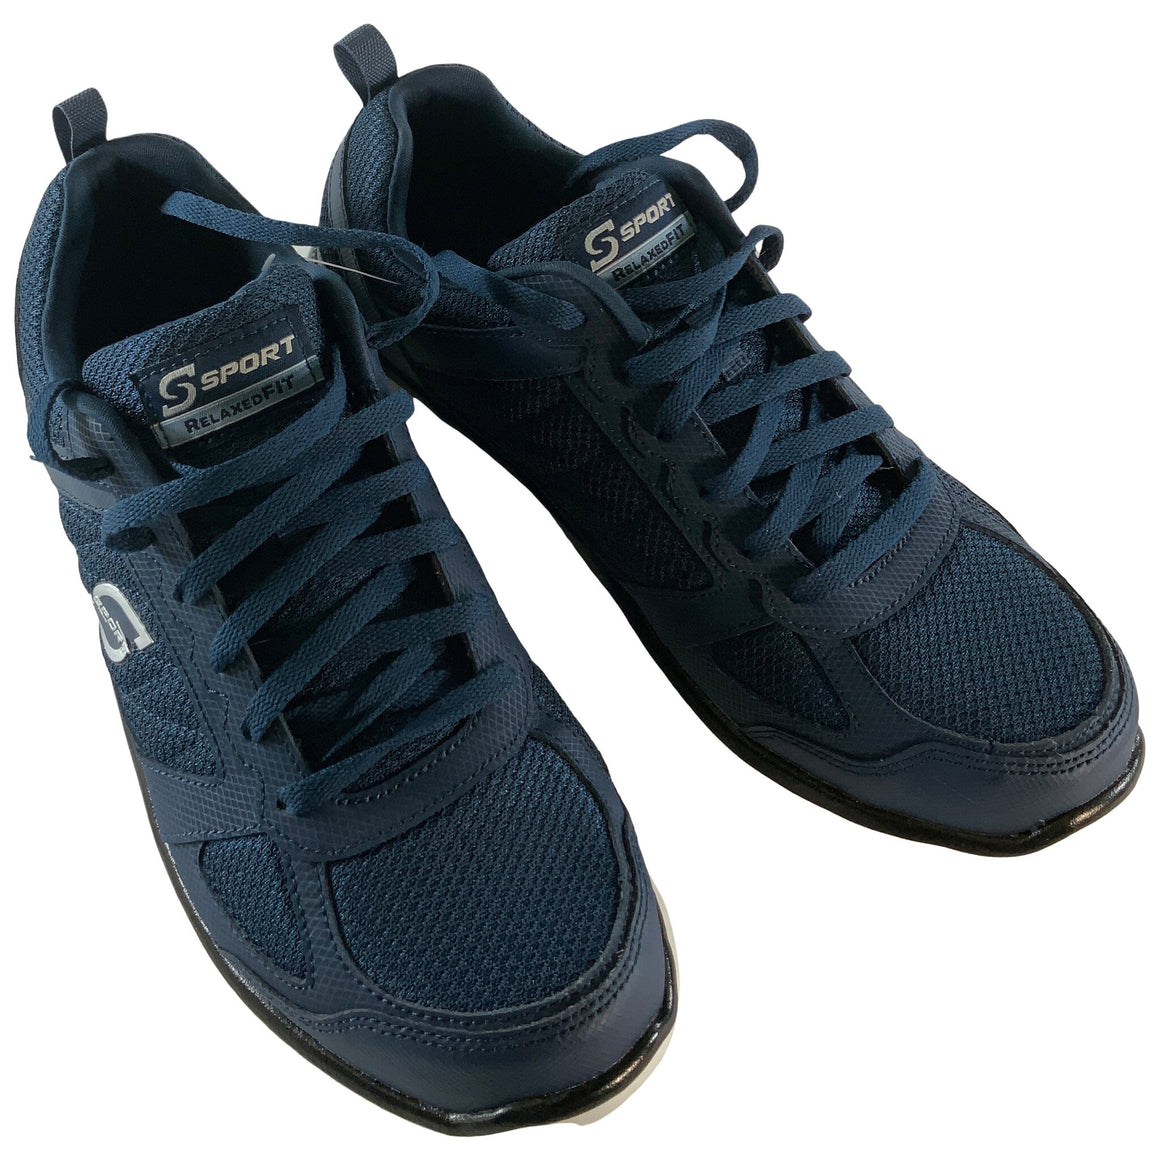 Relaxed Fit Sneakers - Blue 9.5 - Sport By Skechers